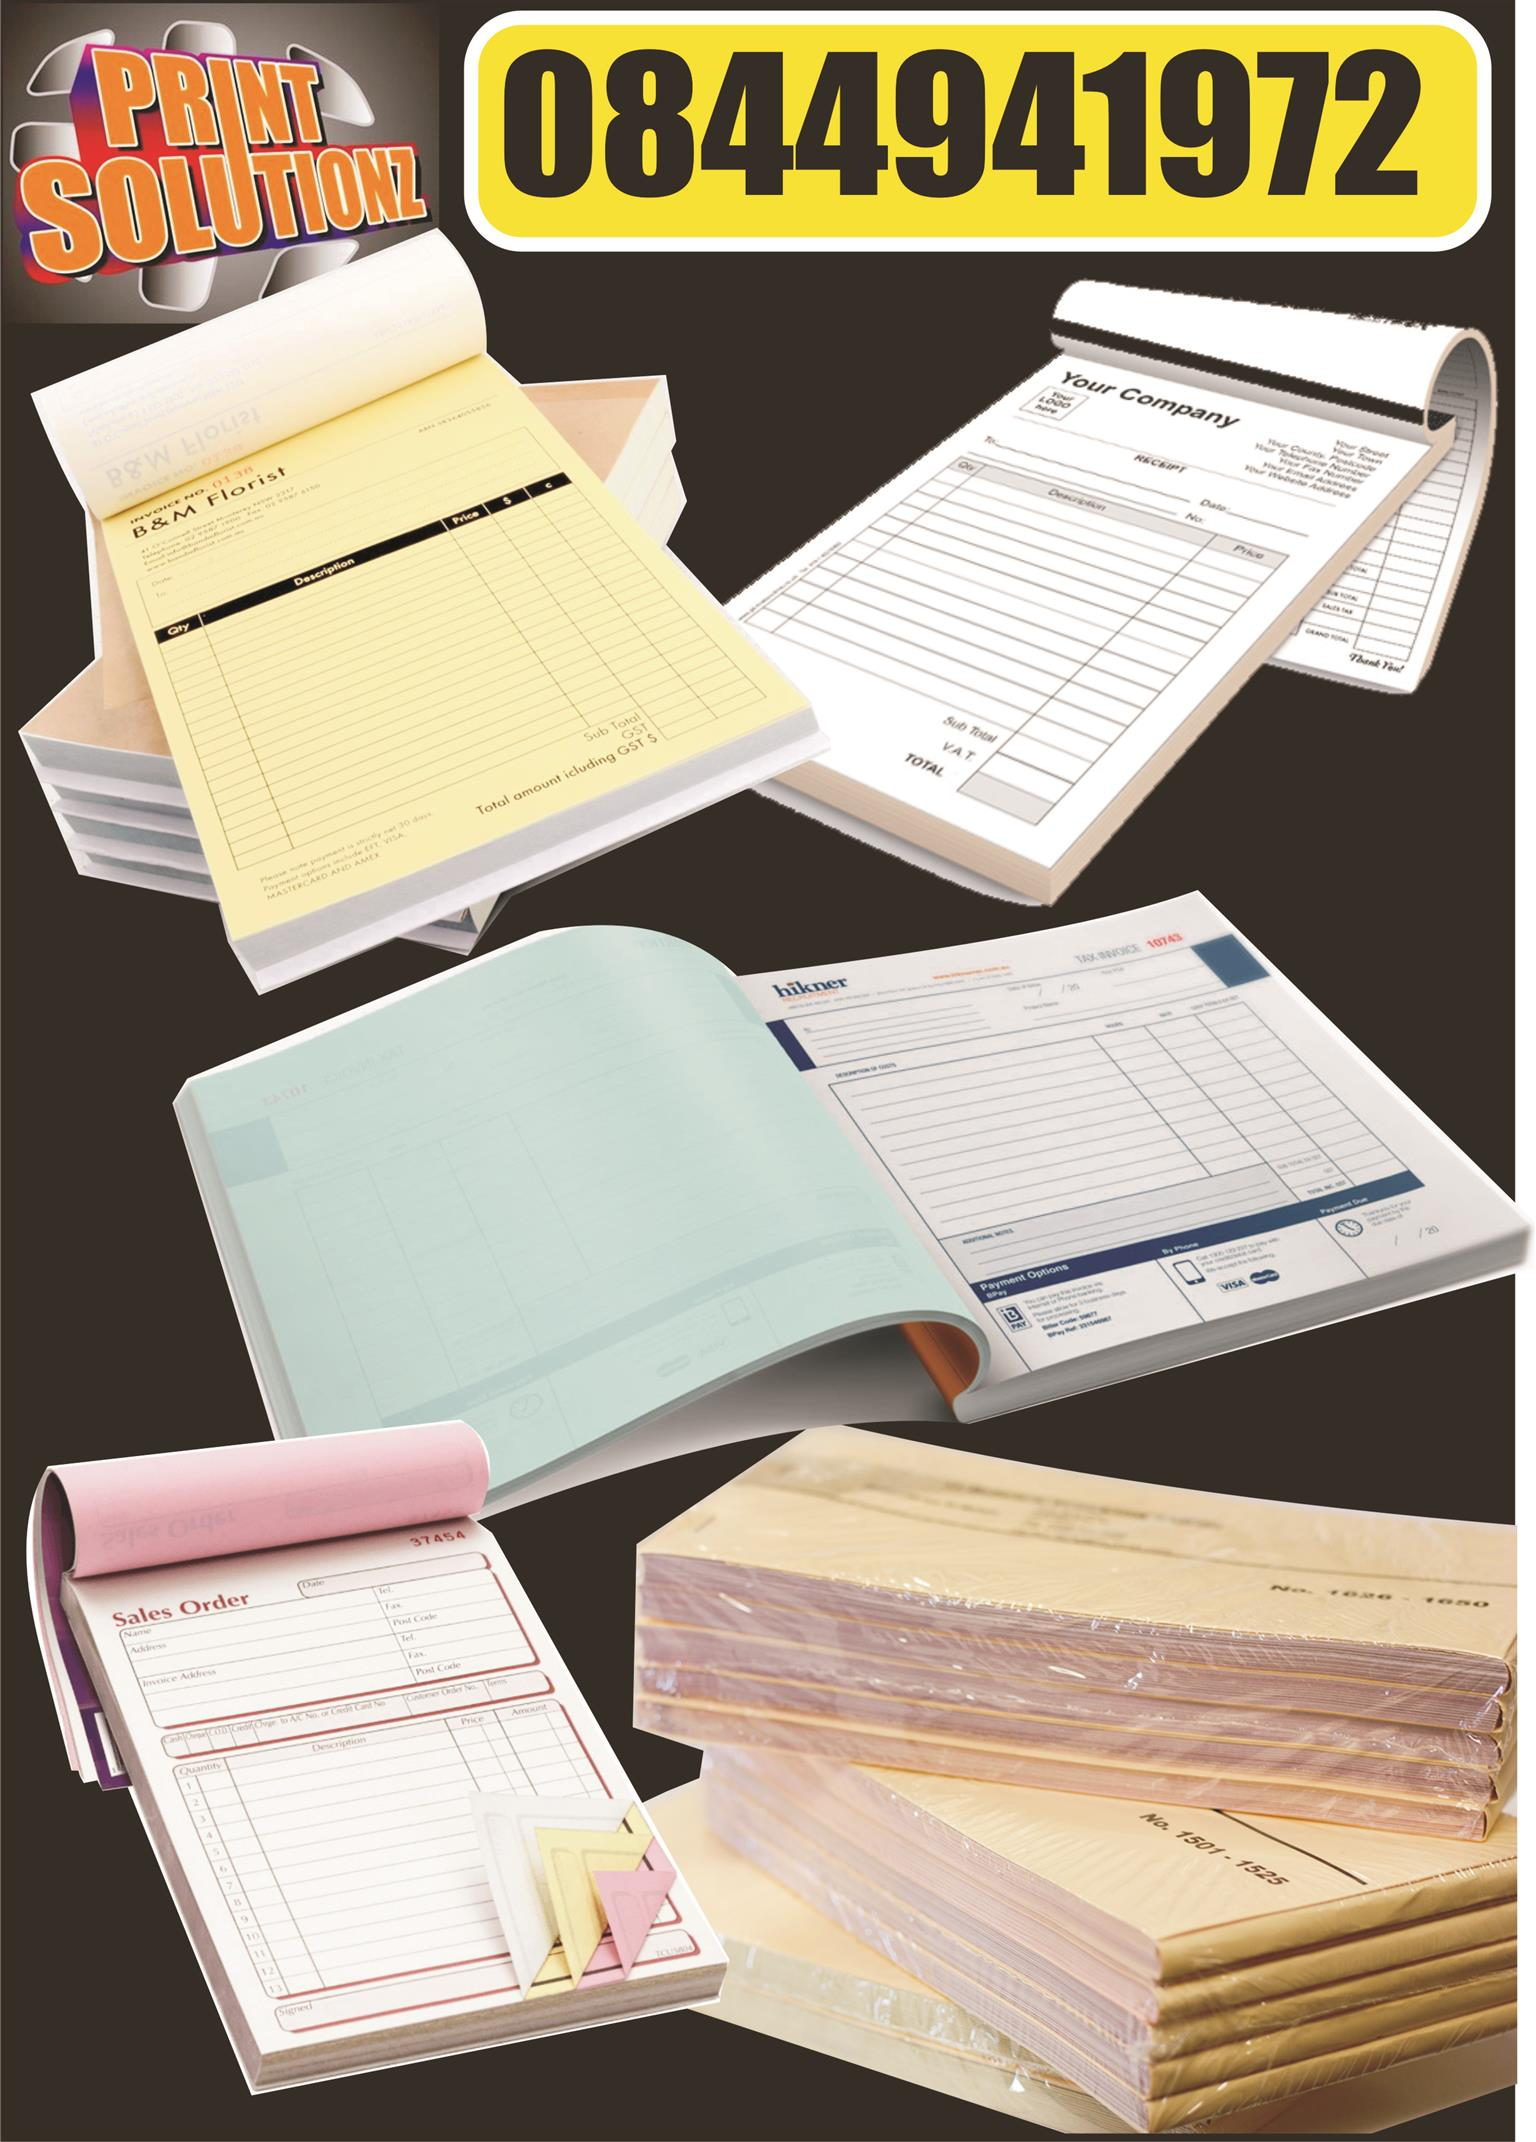 State of the Art printers for Rentals/ Copy paper/invoice books